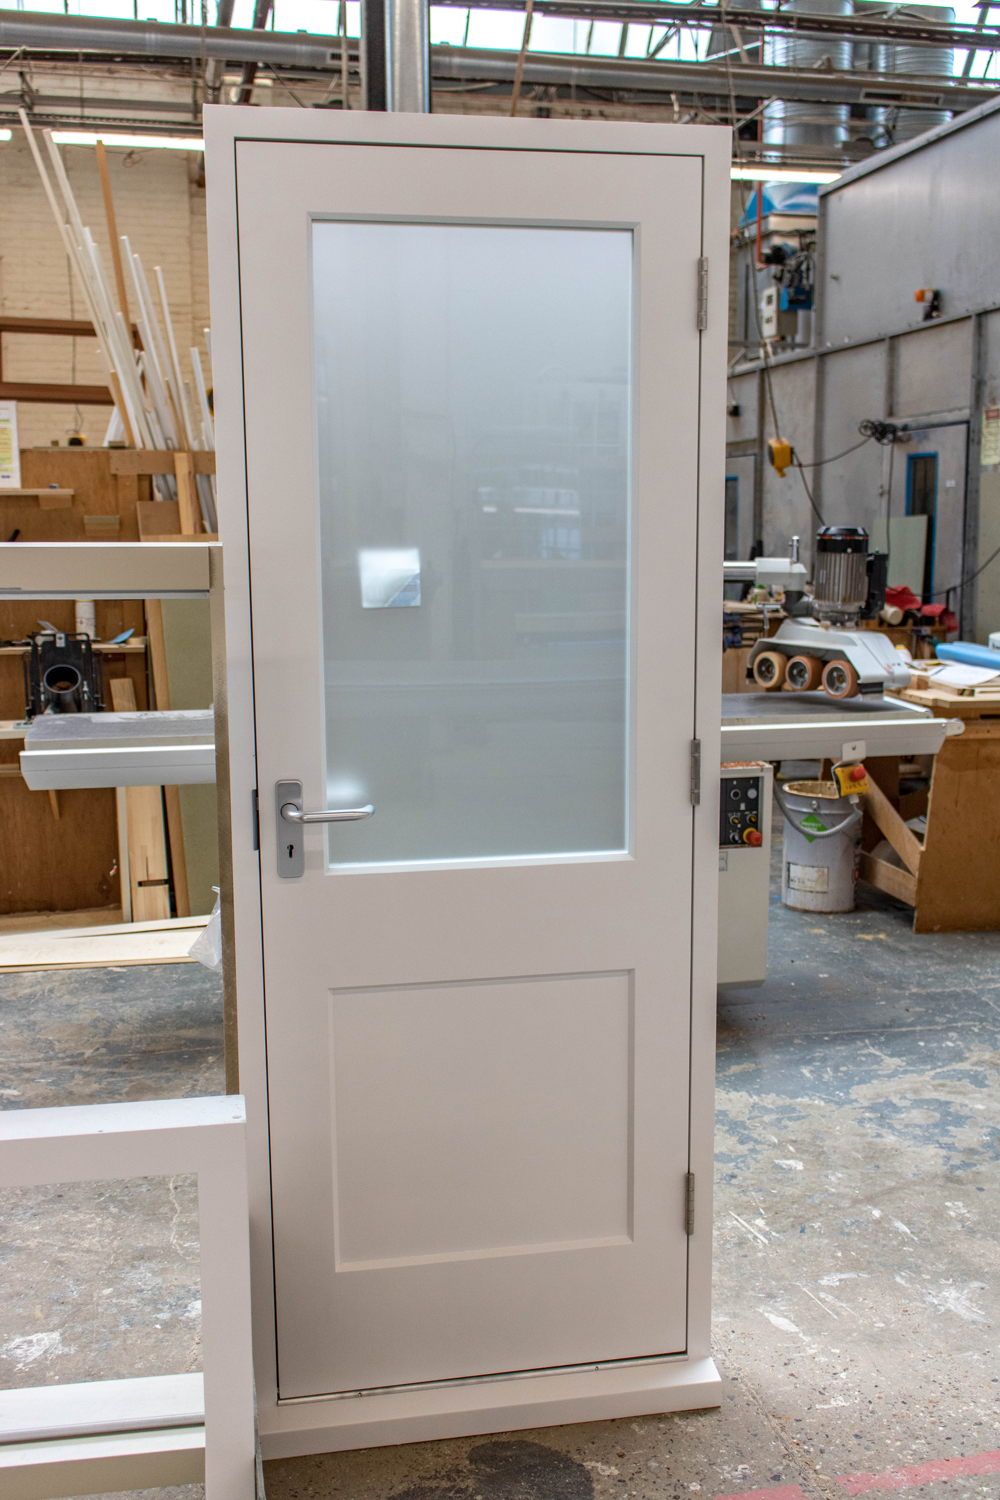 white door with frosted glass panel in k&d joinery workshop london